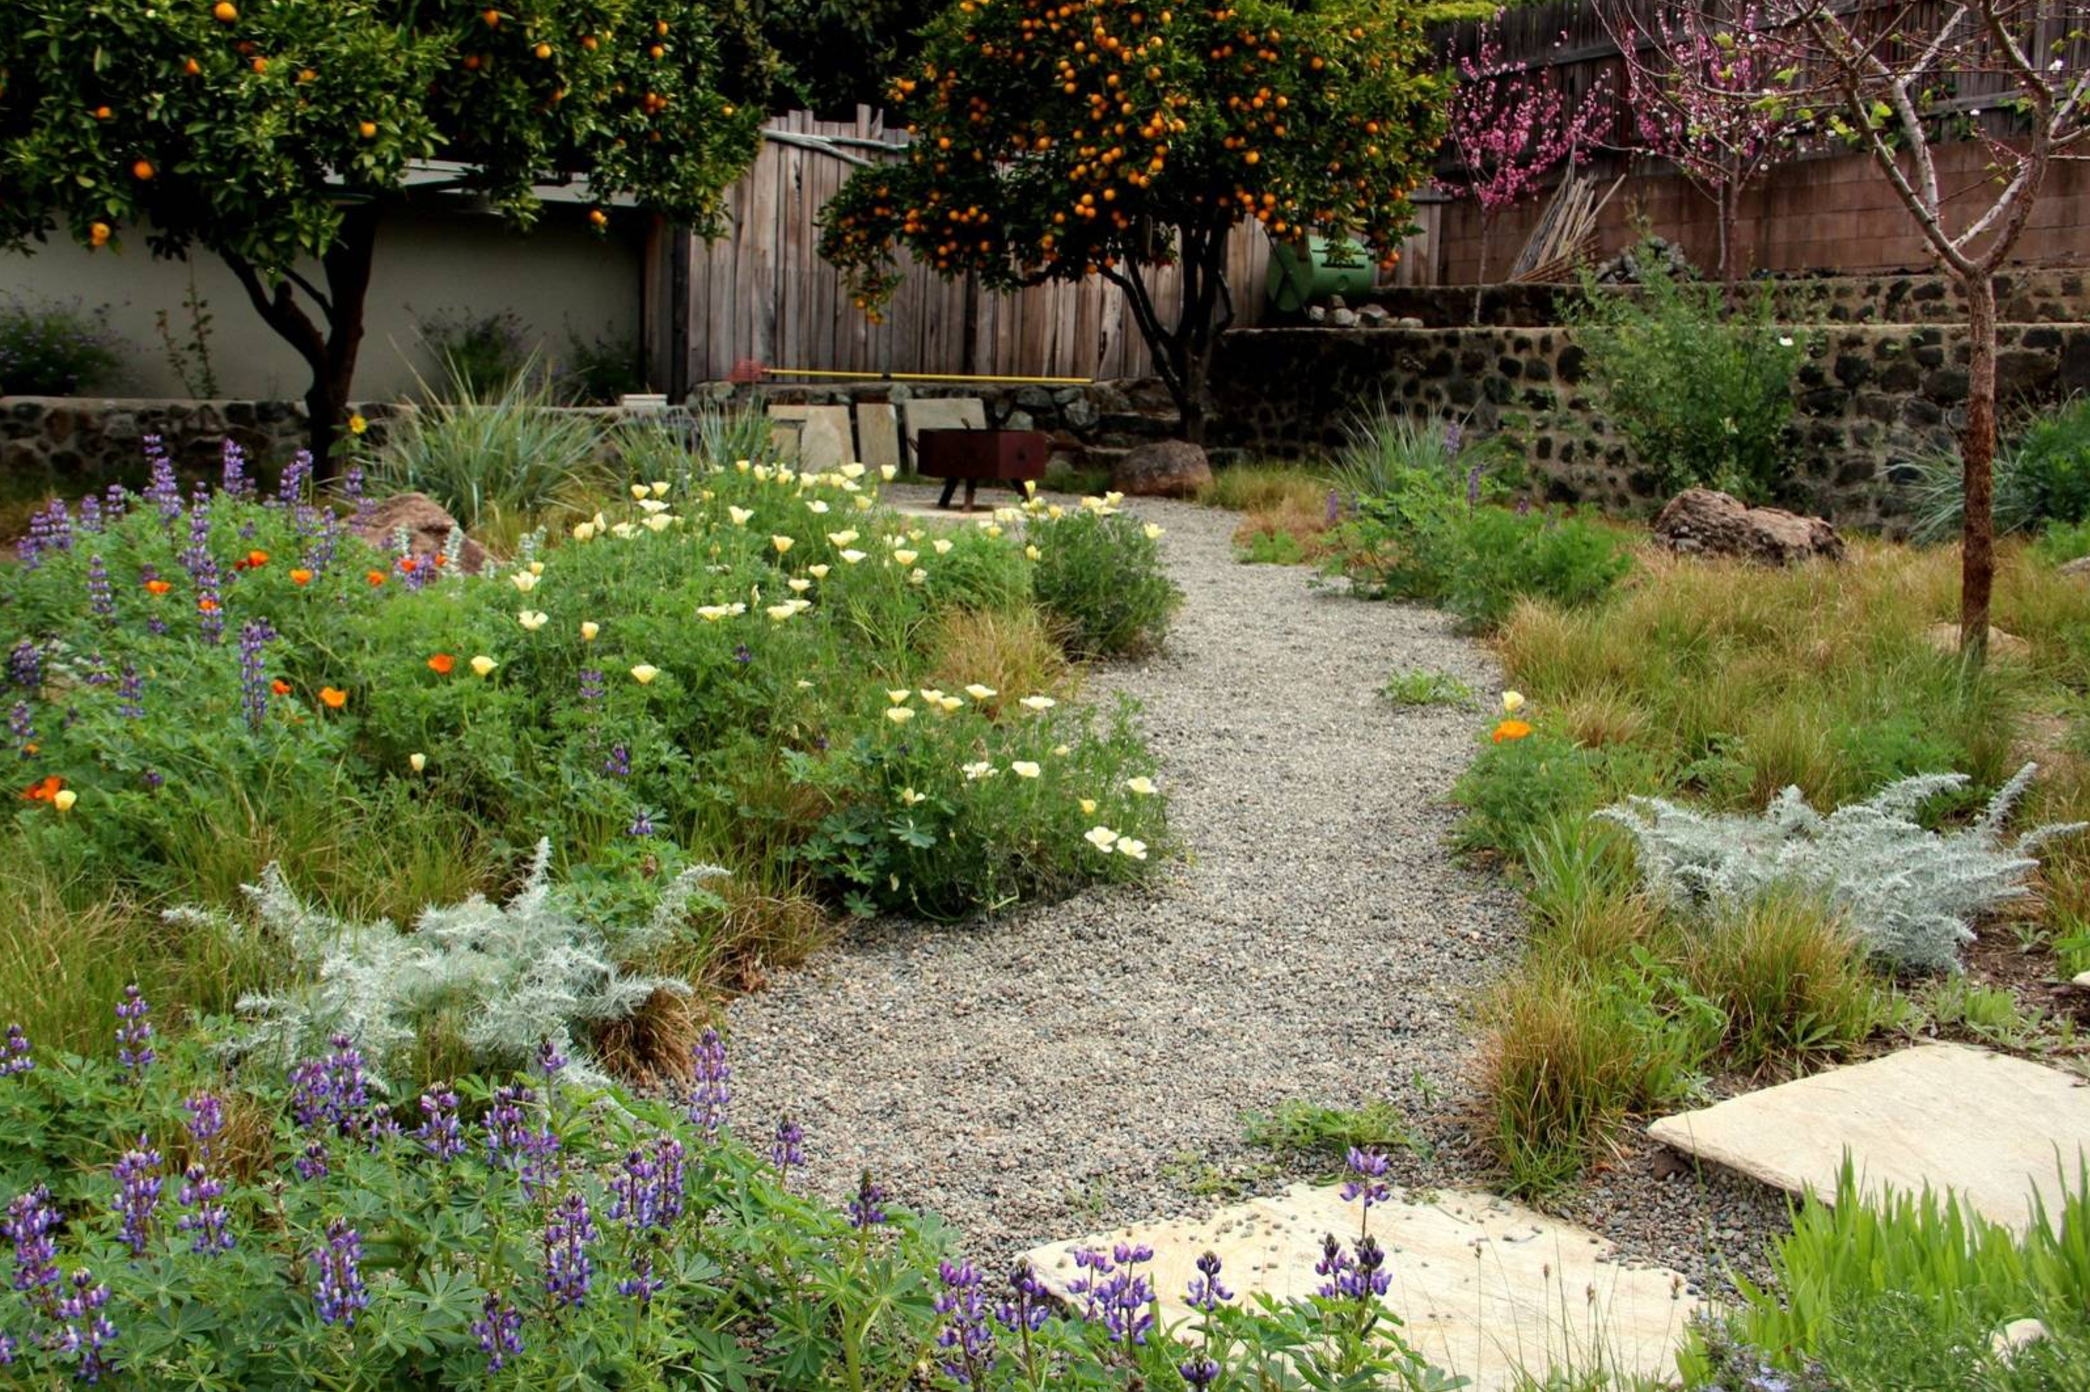 How to create a wild, naturalistic style garden